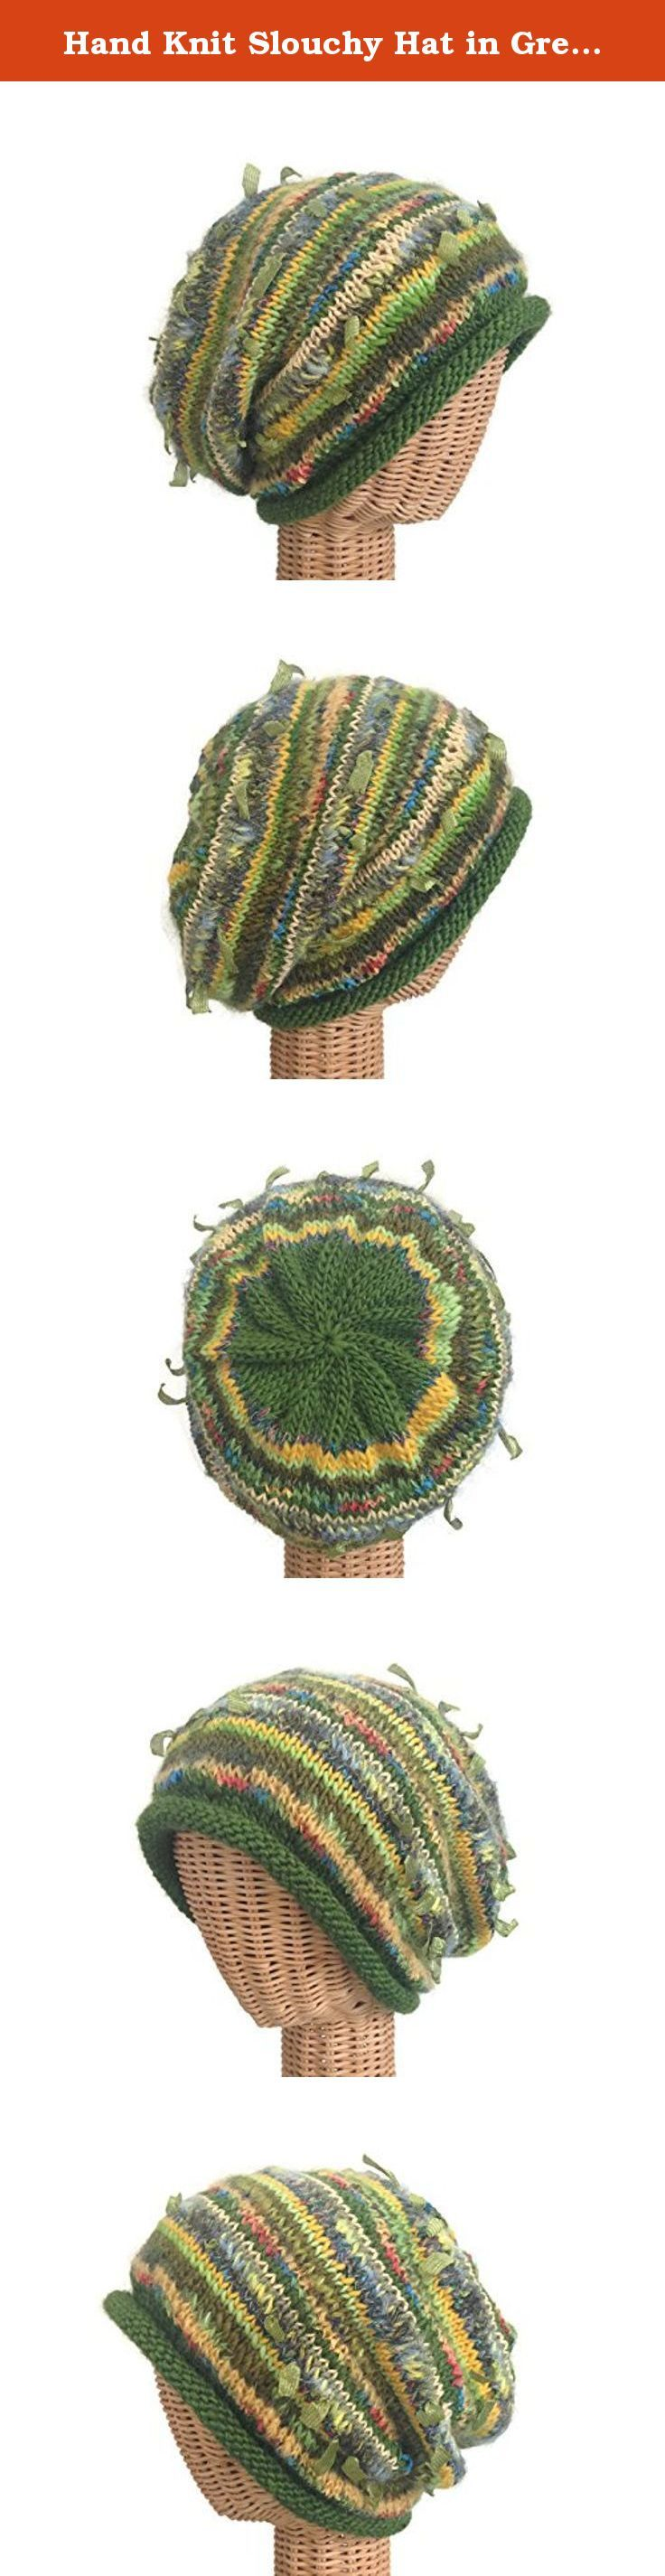 """Hand Knit Slouchy Hat in Green Wool. This gorgeous green slouchy hat is a Women's medium with plenty of """"give."""" It is knitted combination of various novelty yarns and wool. It measures approximately 22 inches around and 11-inches from its rolled brim to the top."""